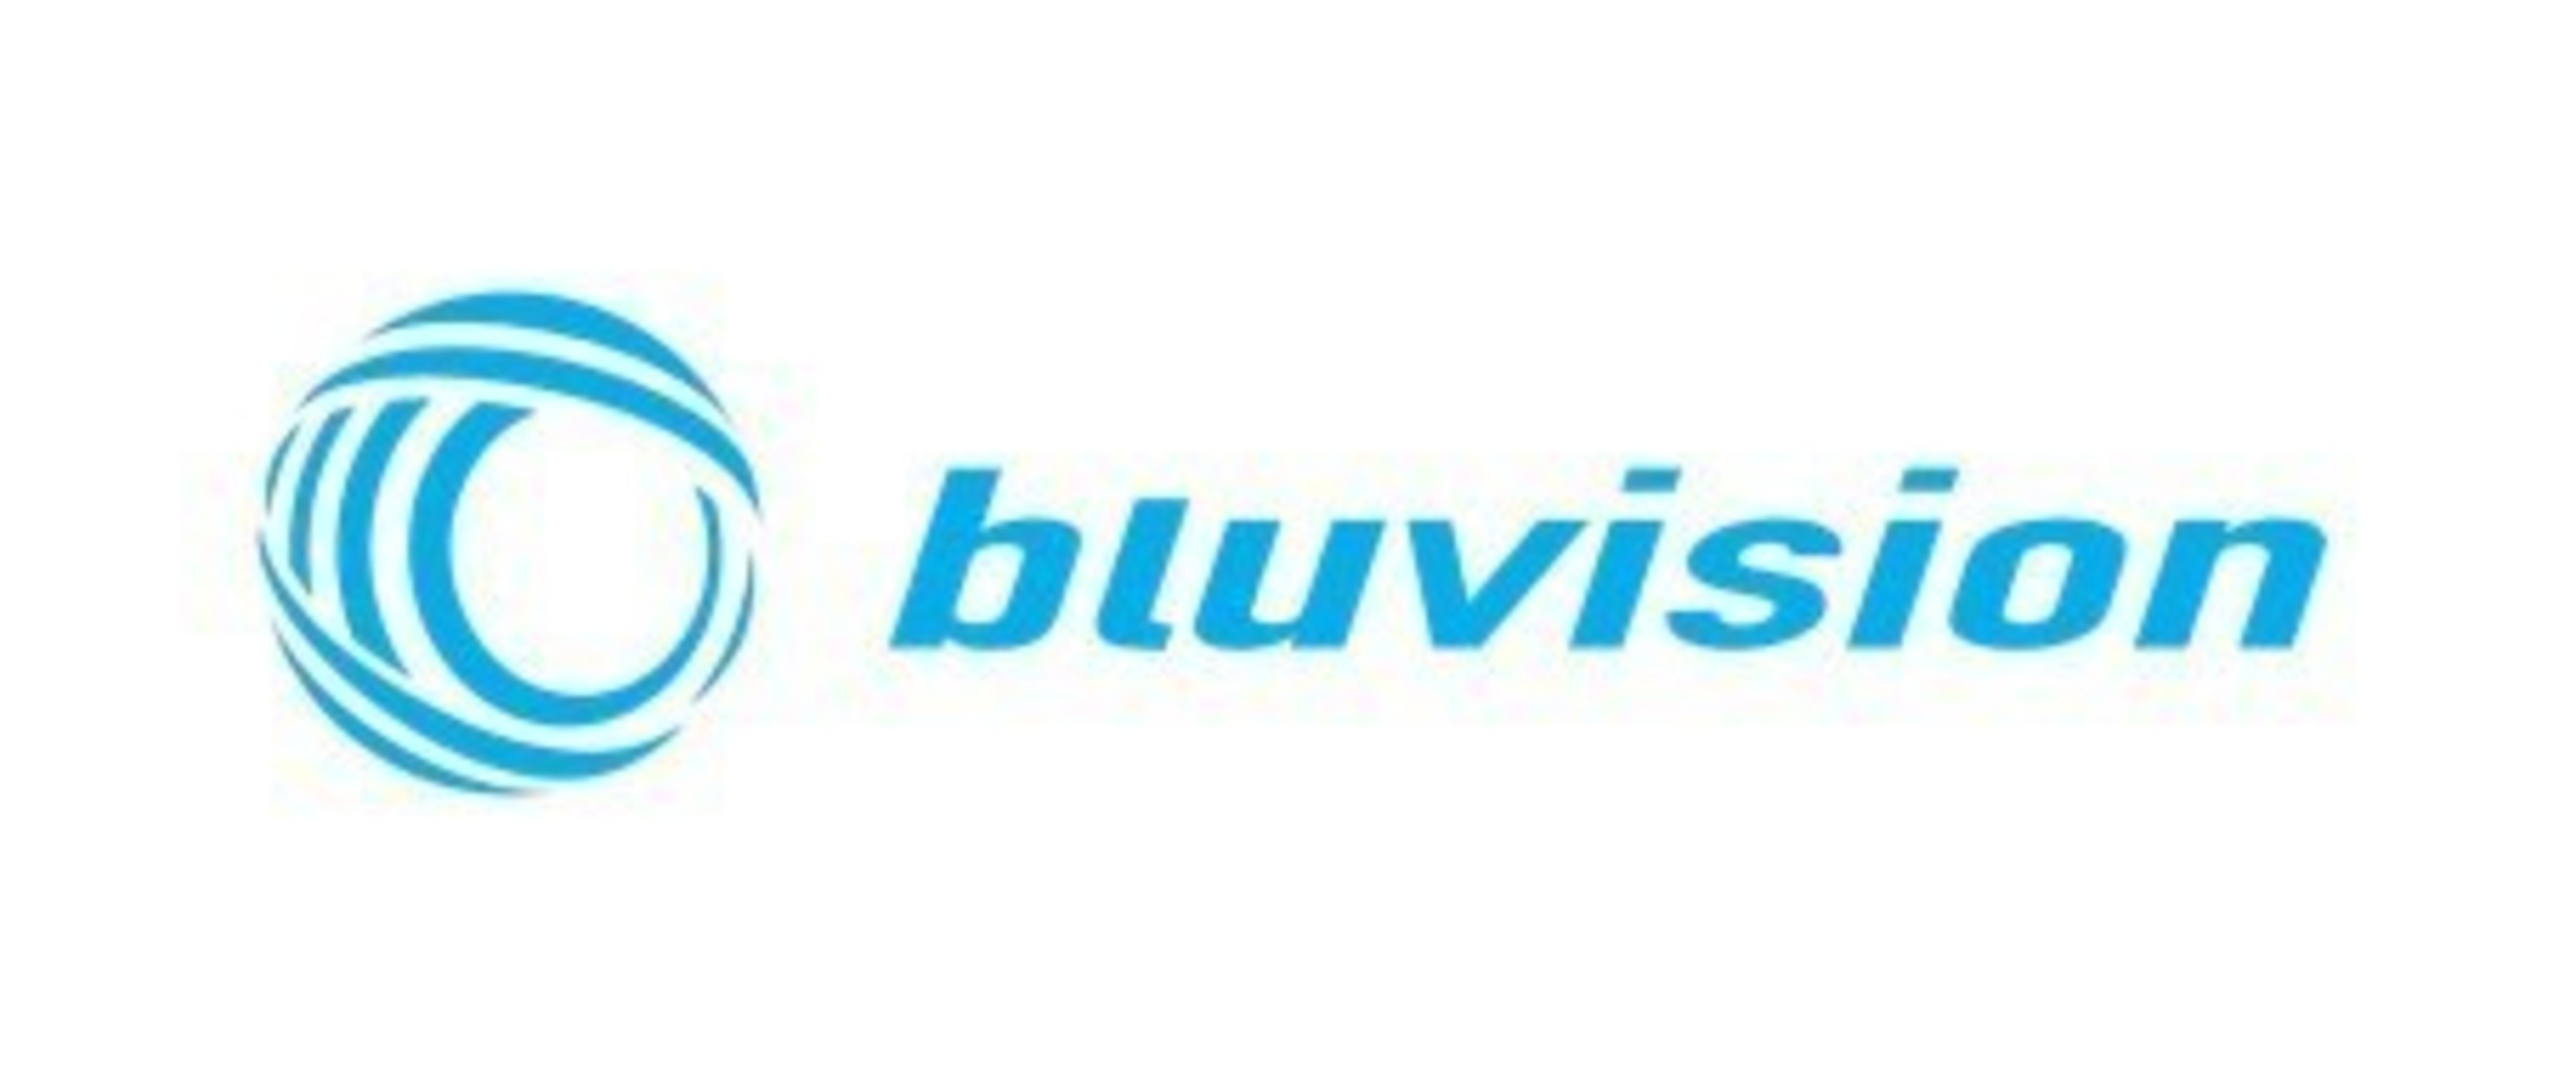 Bluvision Provides Critical Guidance To Help Lead Businesses Through The Complex Iot Landscape And Provides Complete Solutions To Drive Business Value